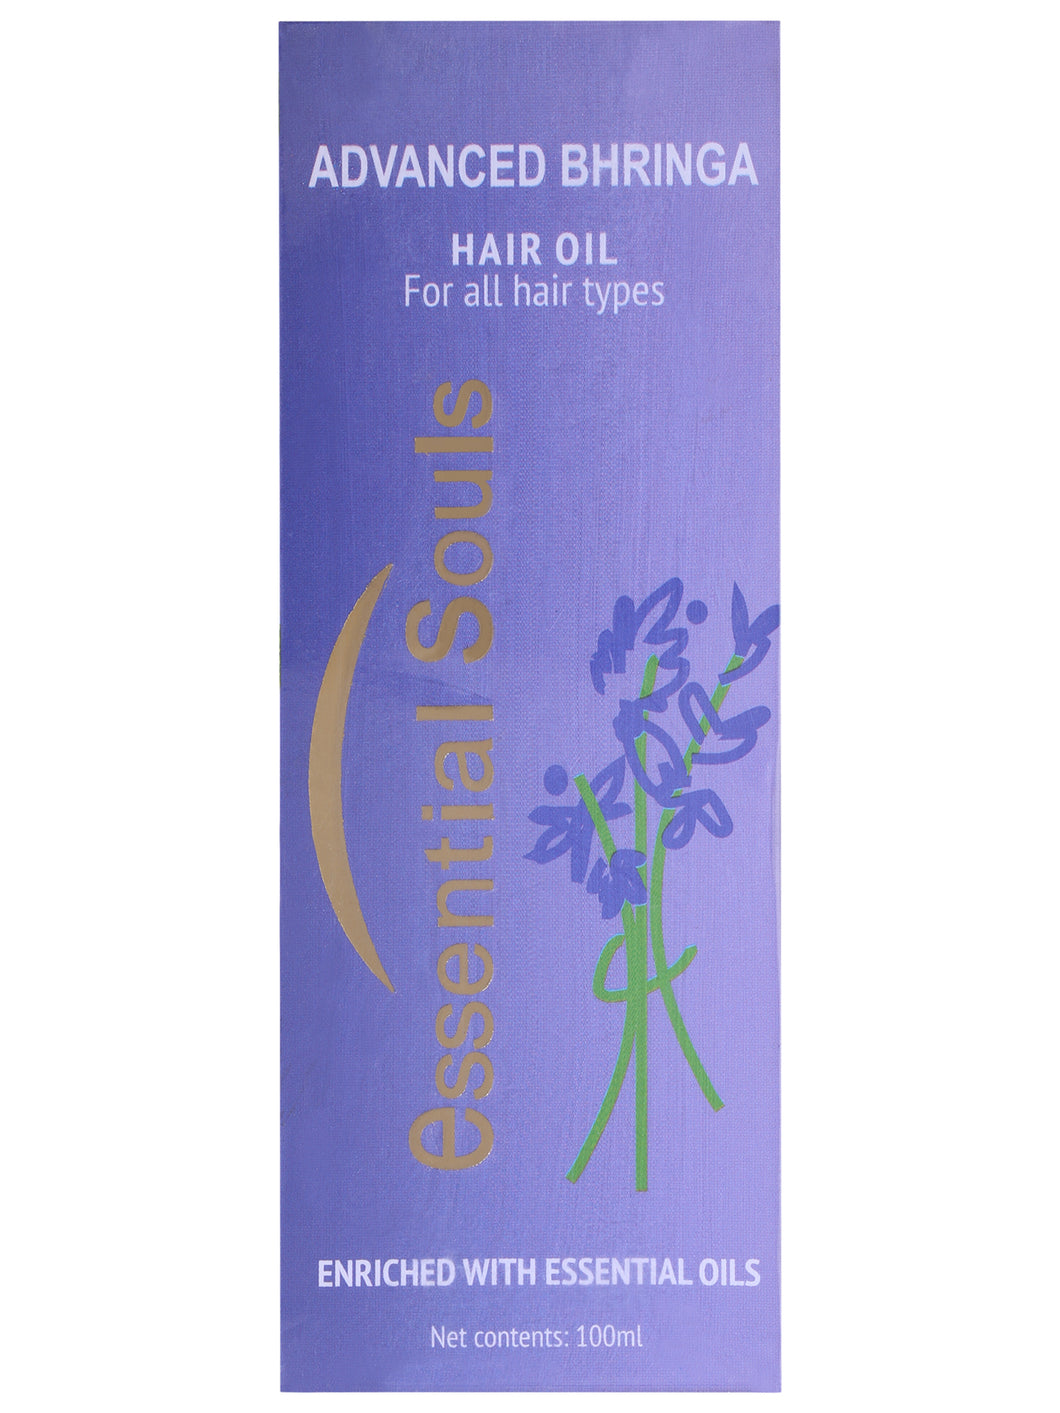 Essential Souls Advanced Bhringa Hair Oil - 100ml